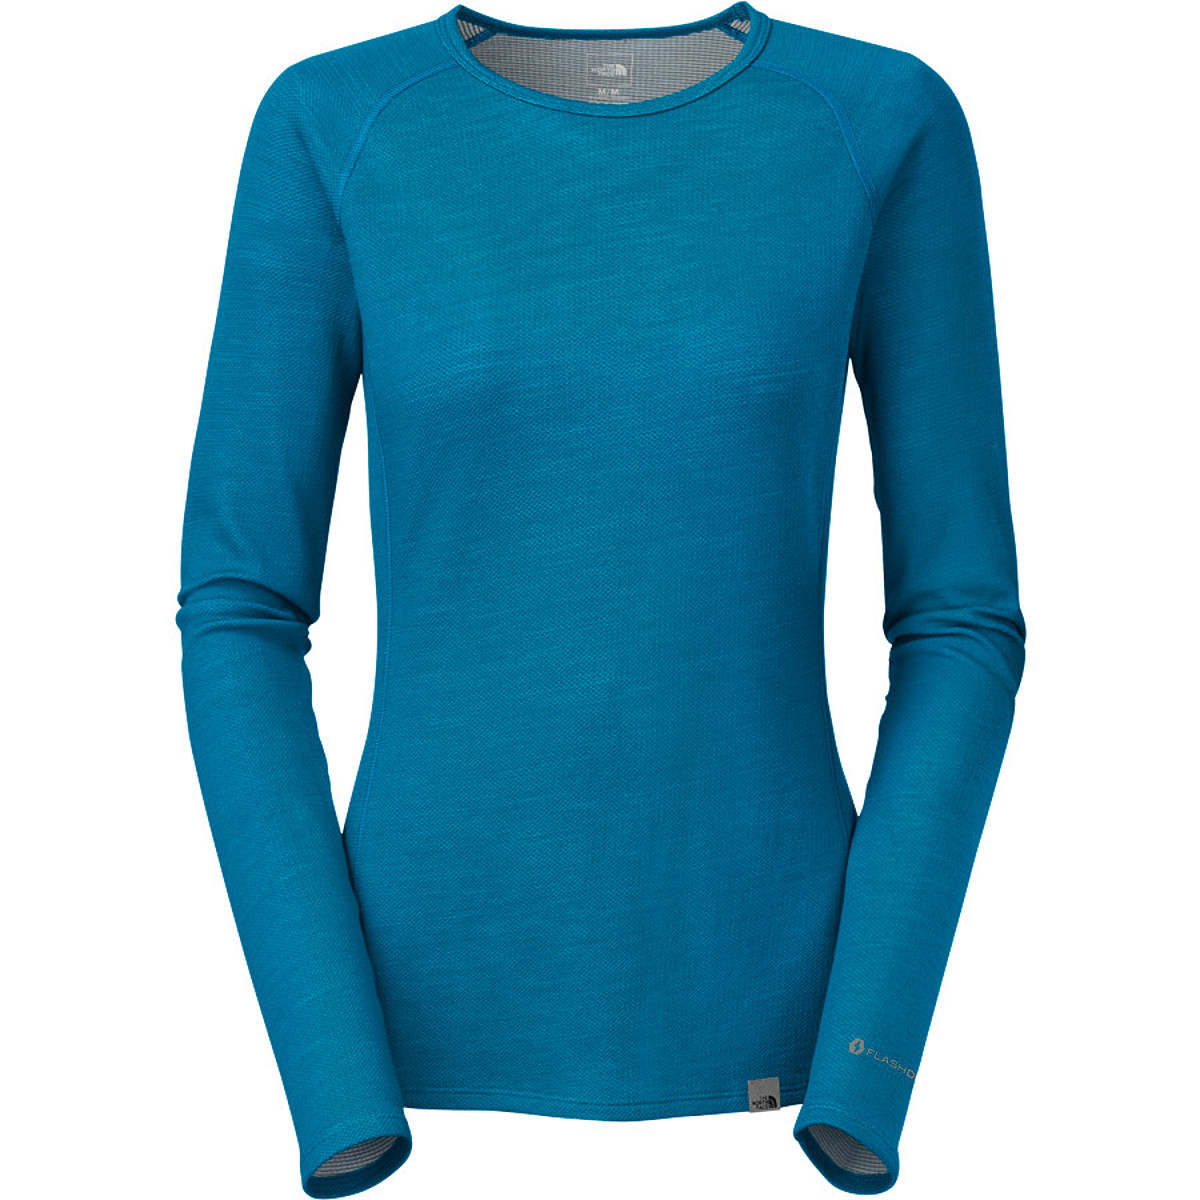 The North Face Warm Blended Merino Long Sleeve Crew